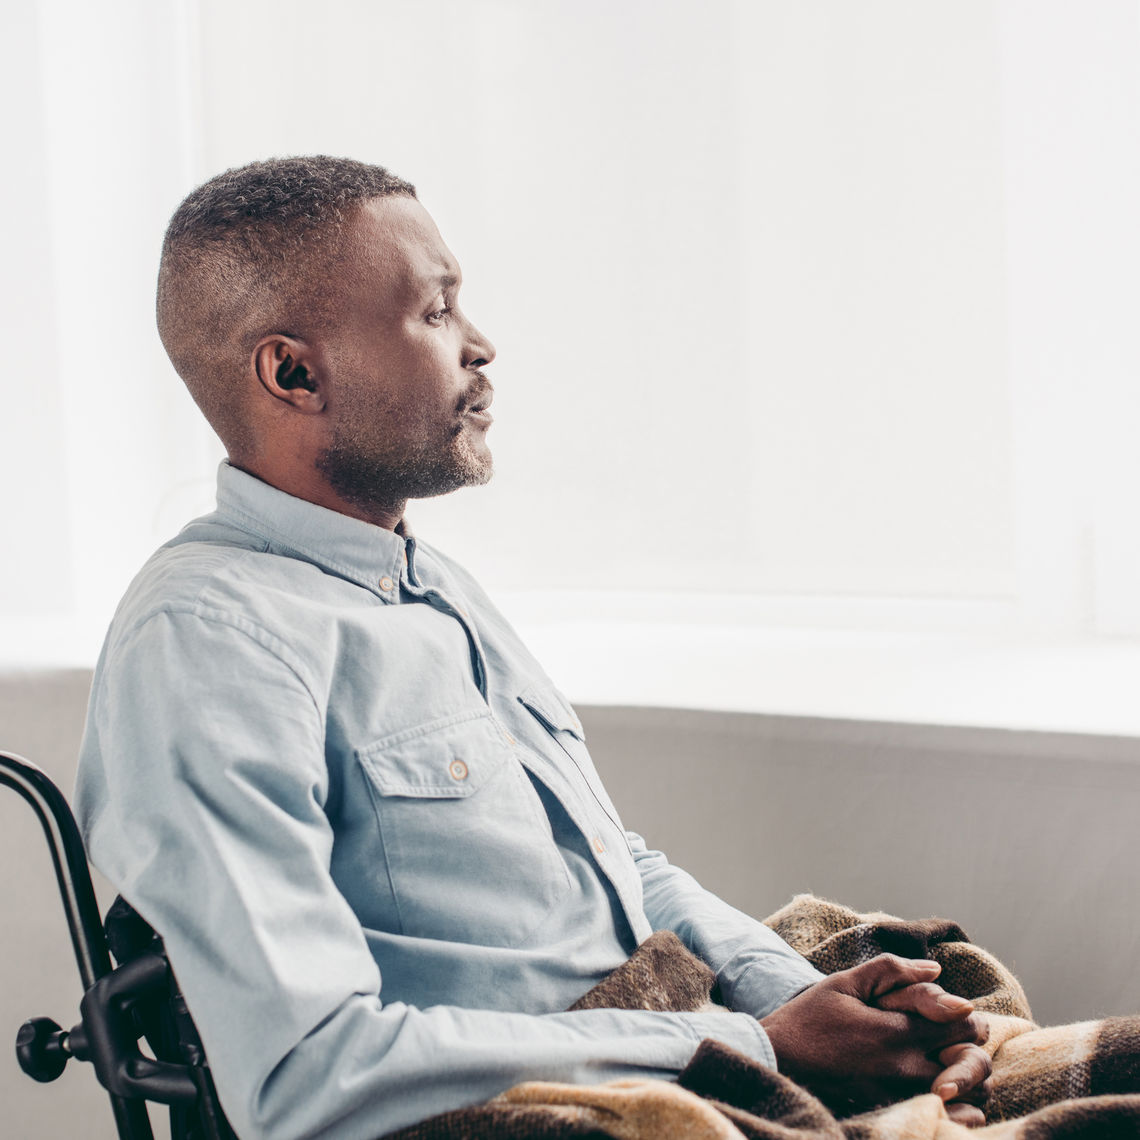 side view of man sitting in wheelchair and looking away